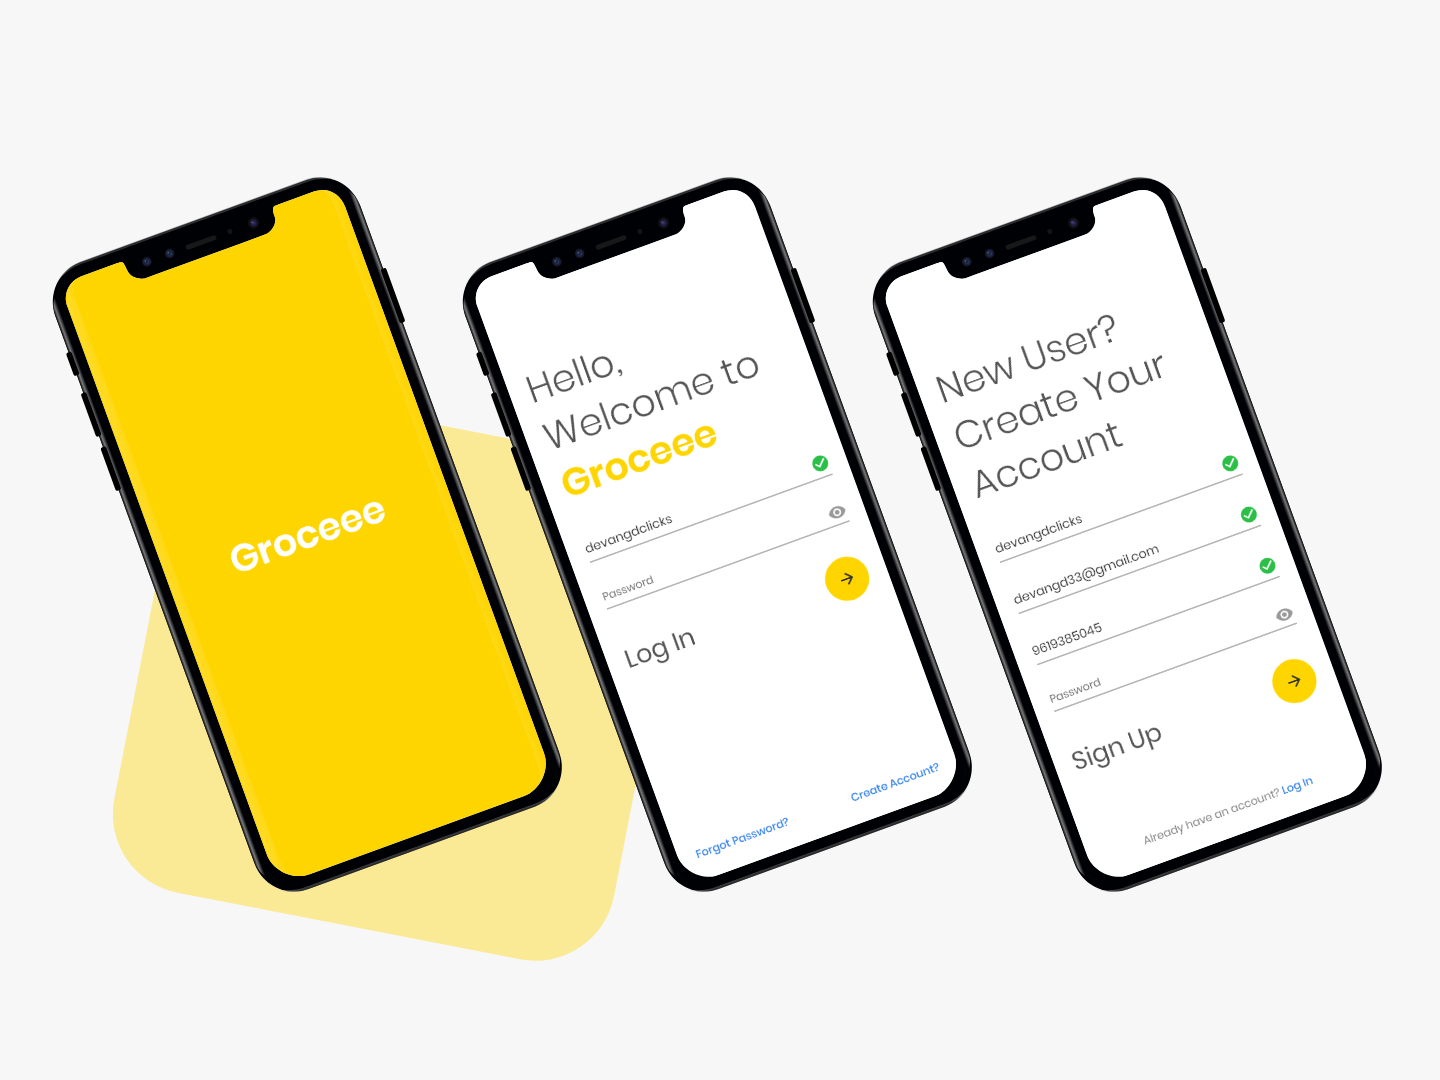 Groceee app - Getting Started grocery online grocery app grocery uidesign uiux best design login page signup form signup page signup screen signupform signup login screen login design login form login splash screen splash user inteface ui